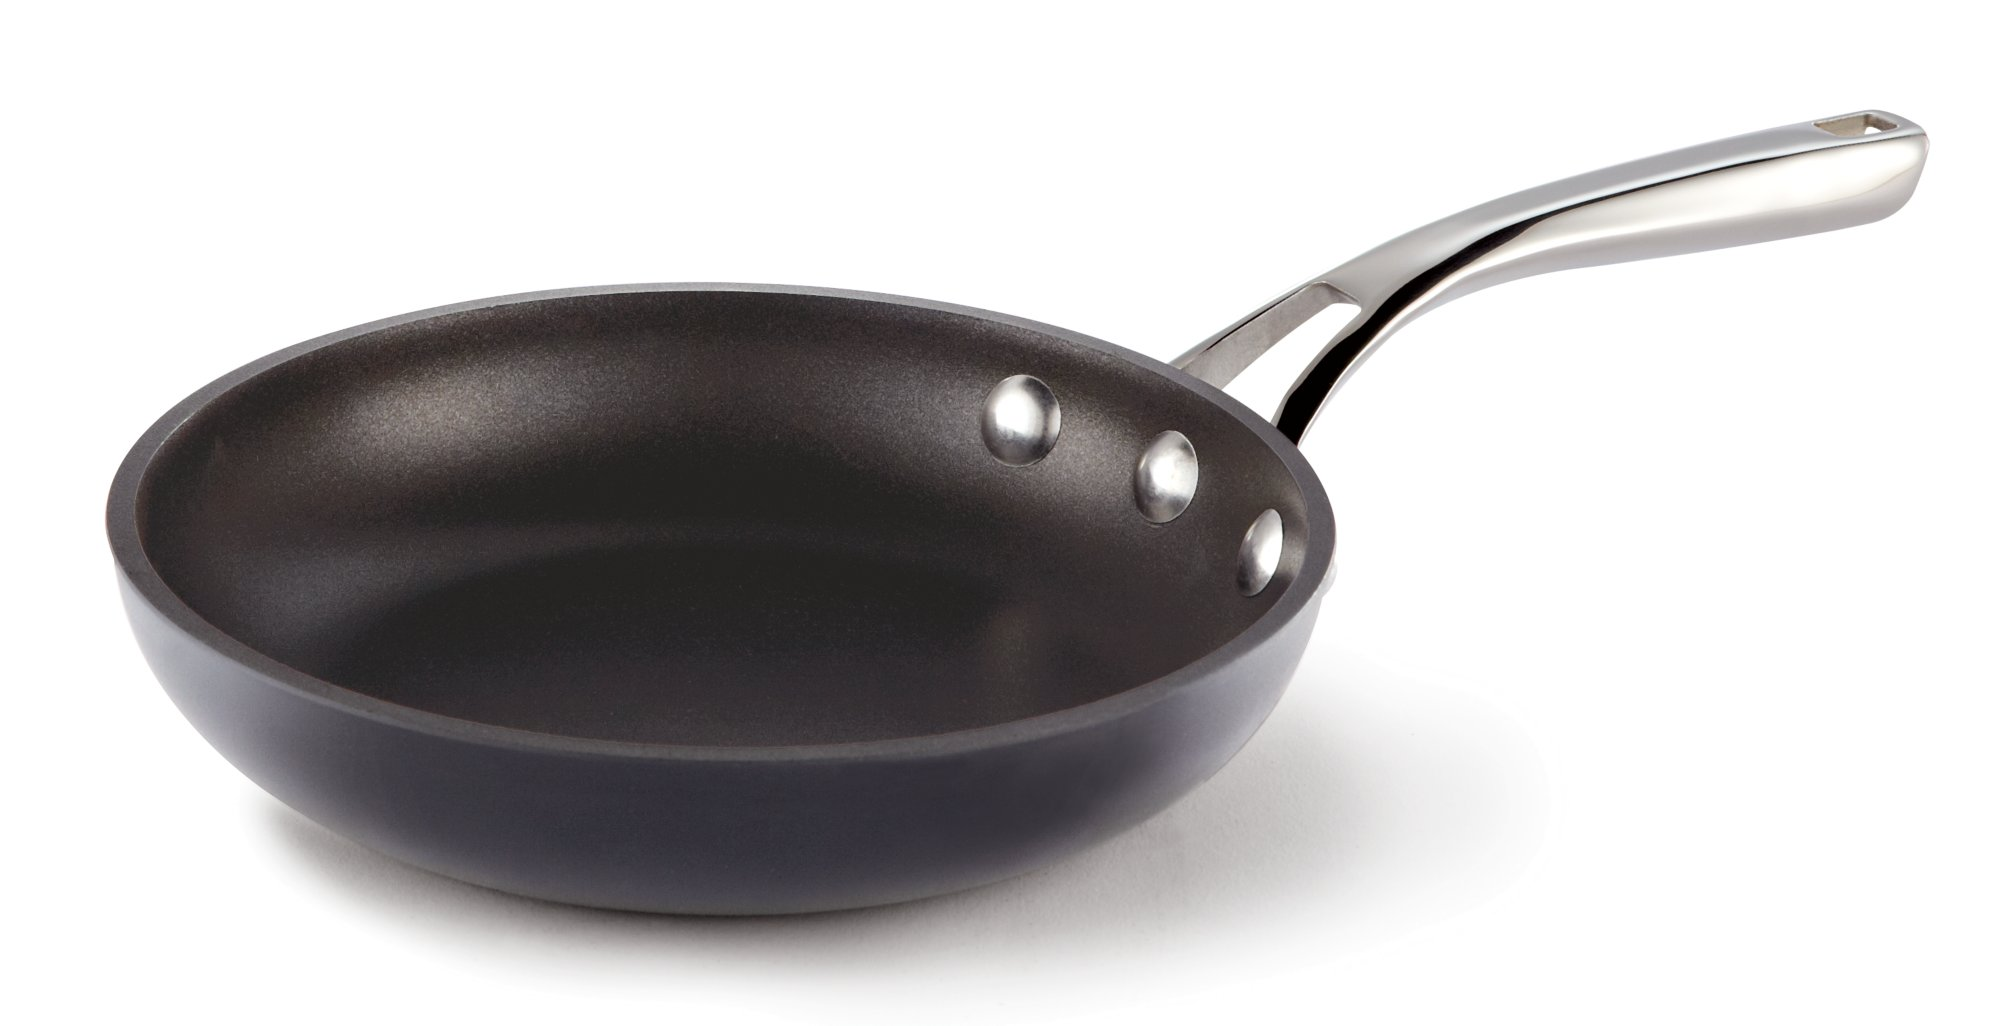 Calphalon Williams-Sonoma Elite Nonstick 8-in. Fry Pan